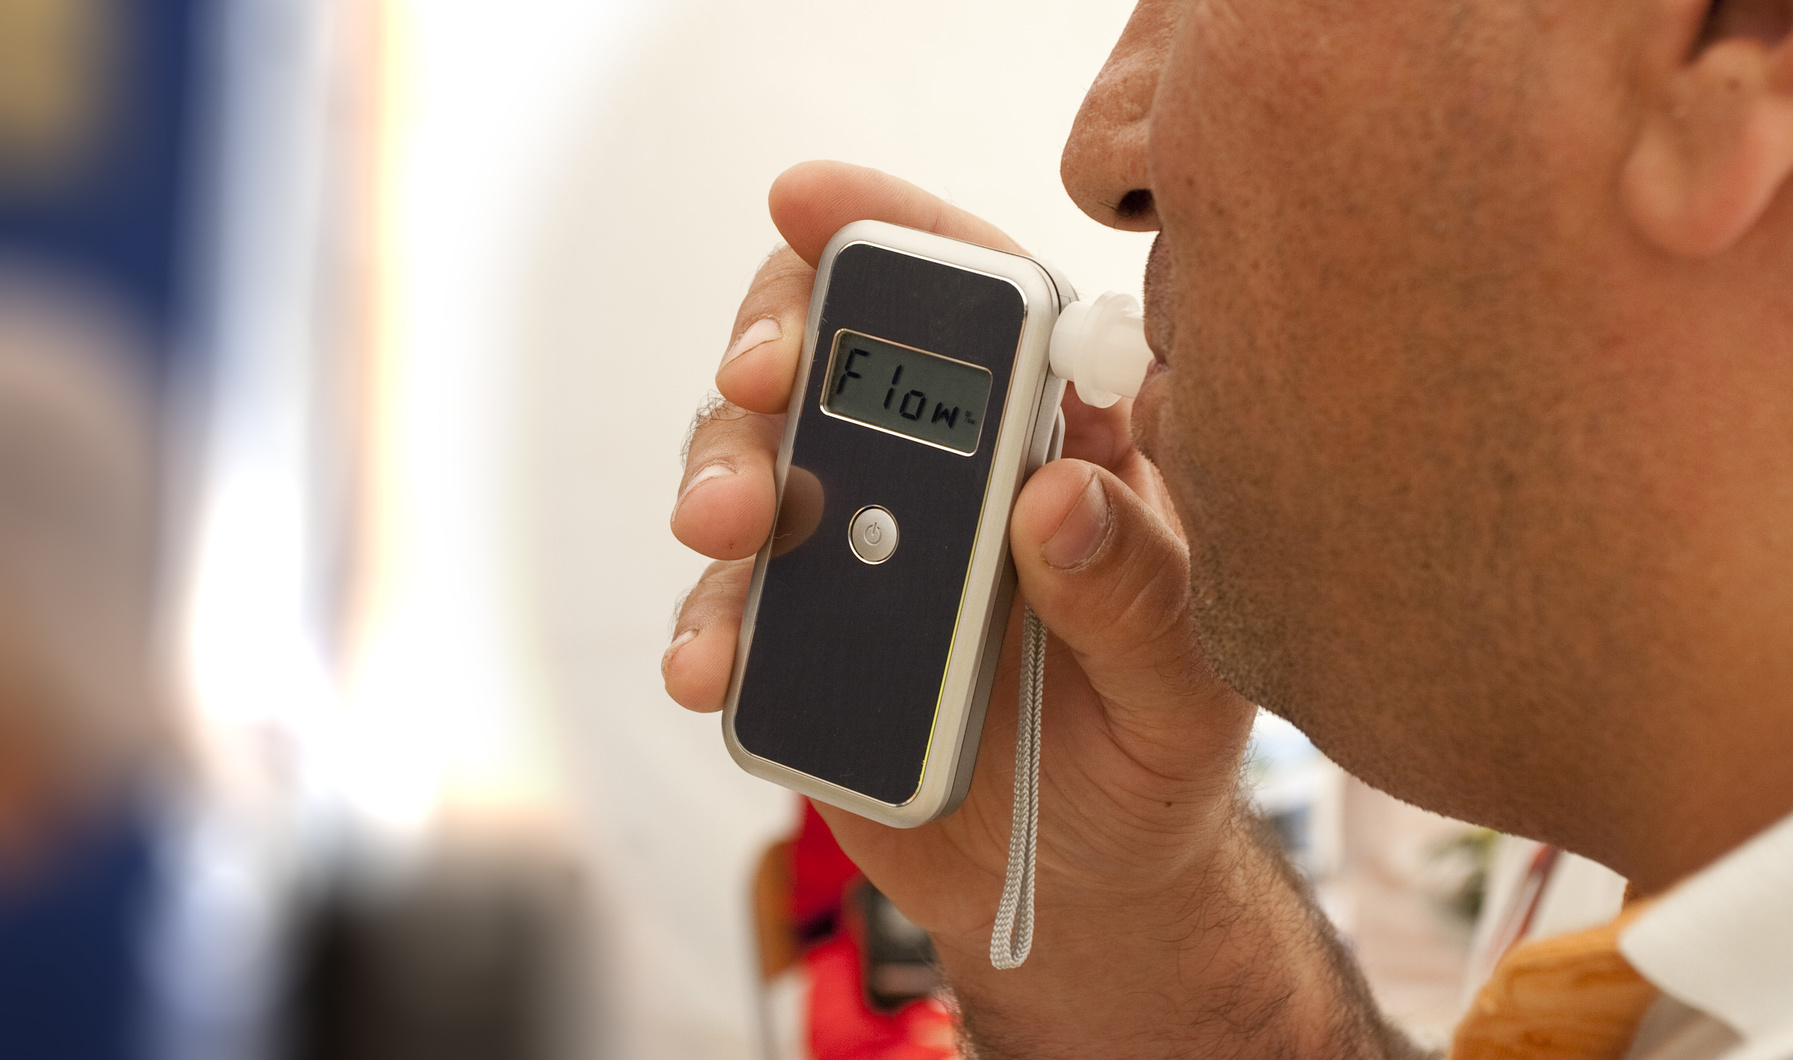 Know Before You Blow: Should I Take a Breathalyzer Test?